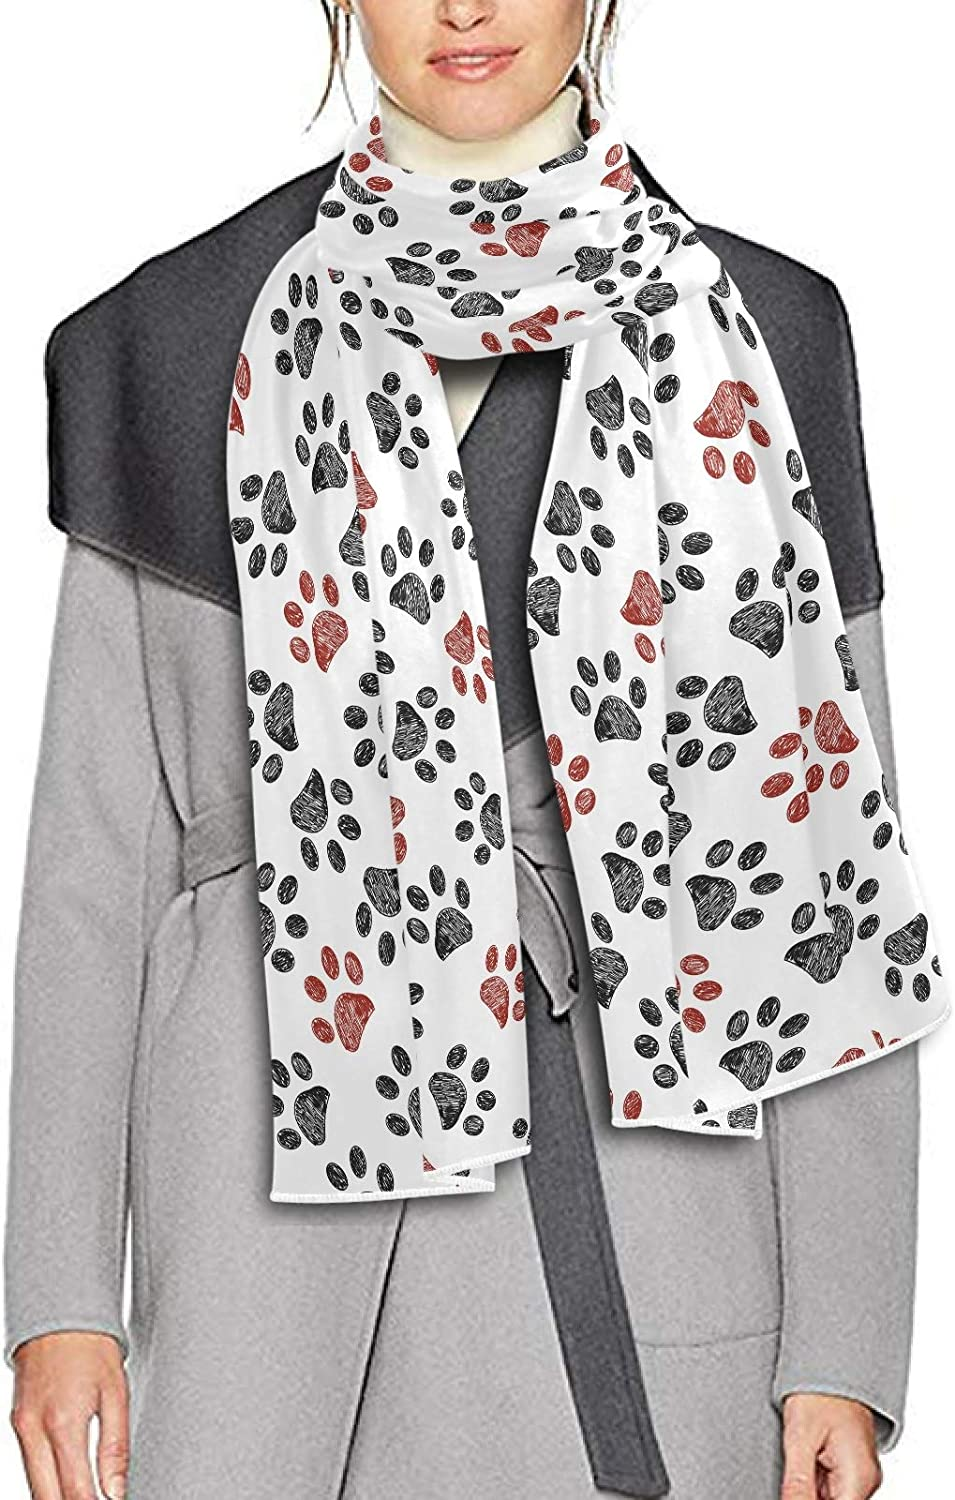 Scarf for Women and Men Doodle Paw Red Blanket Shawl Scarf wraps Warm soft Winter Long Scarves Lightweight